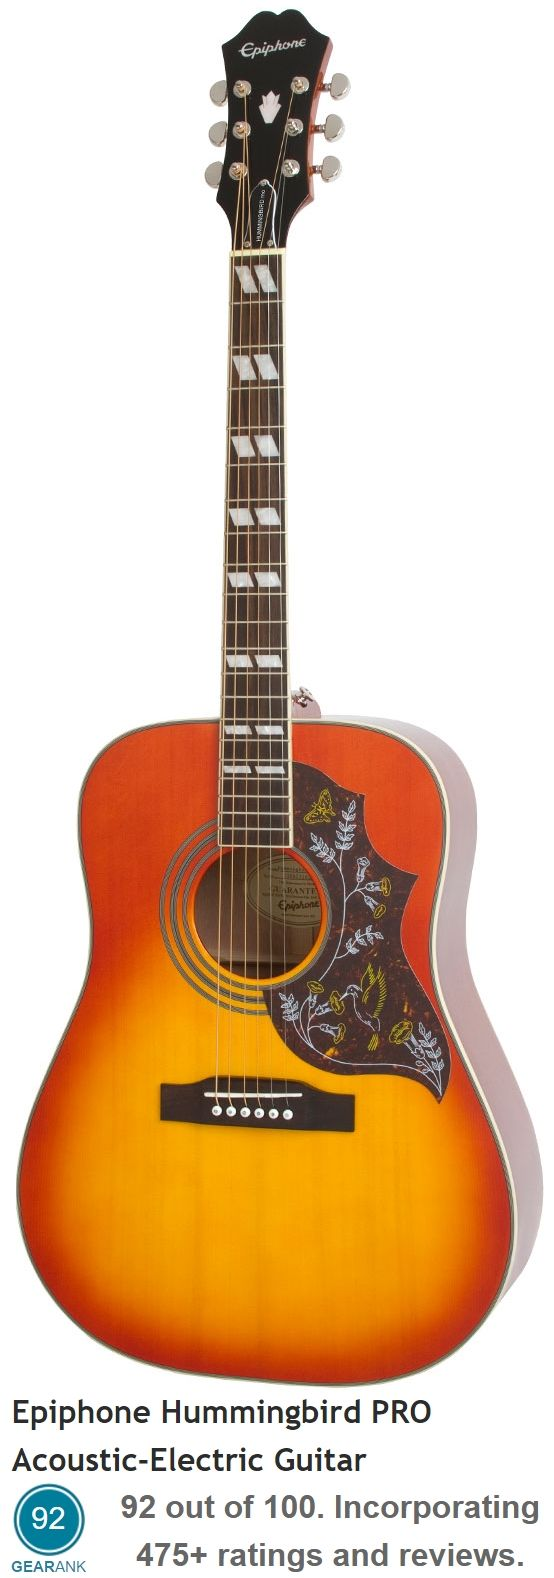 The Epiphone Hummingbird PRO Acoustic-Electric Guitar.